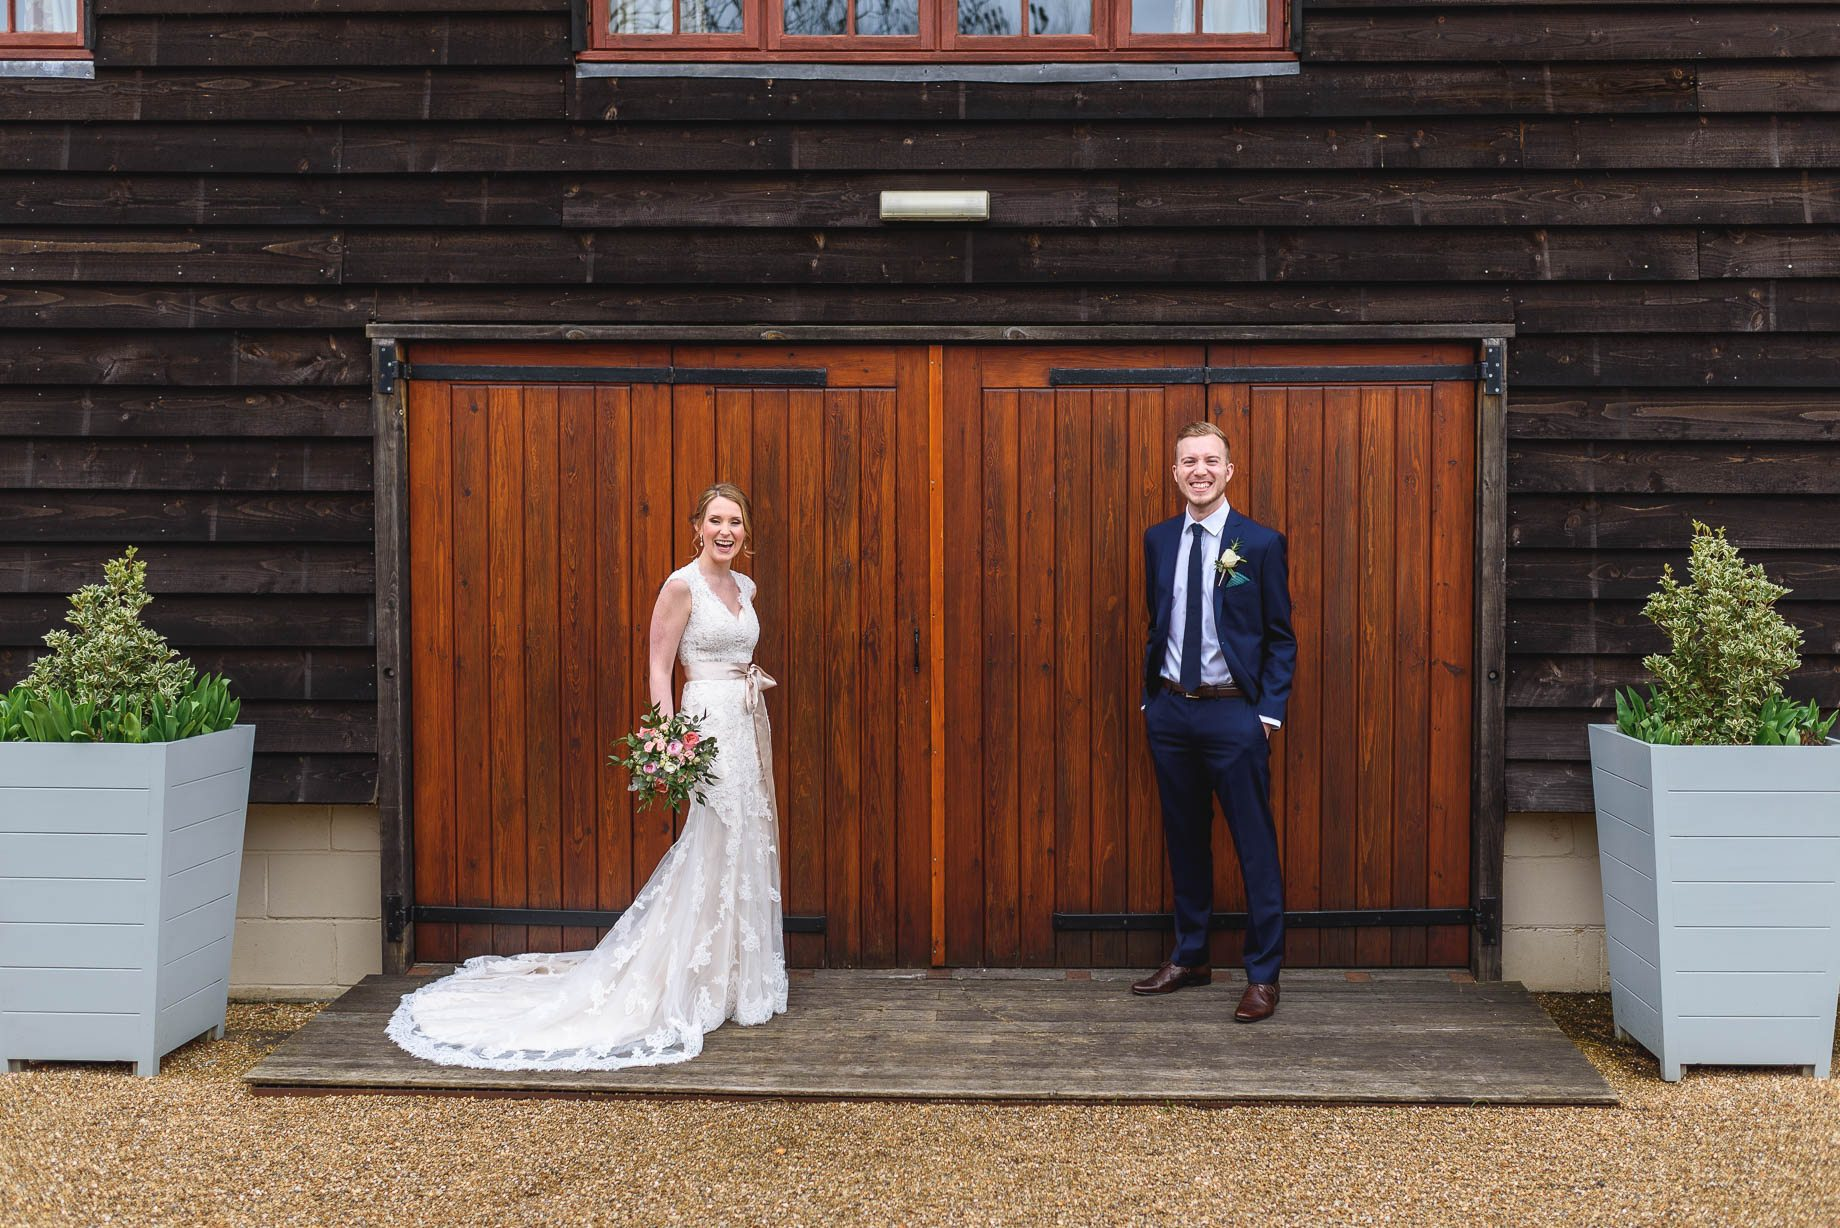 Surrey Wedding Photography by Guy Collier - Becca and James (57 of 145)